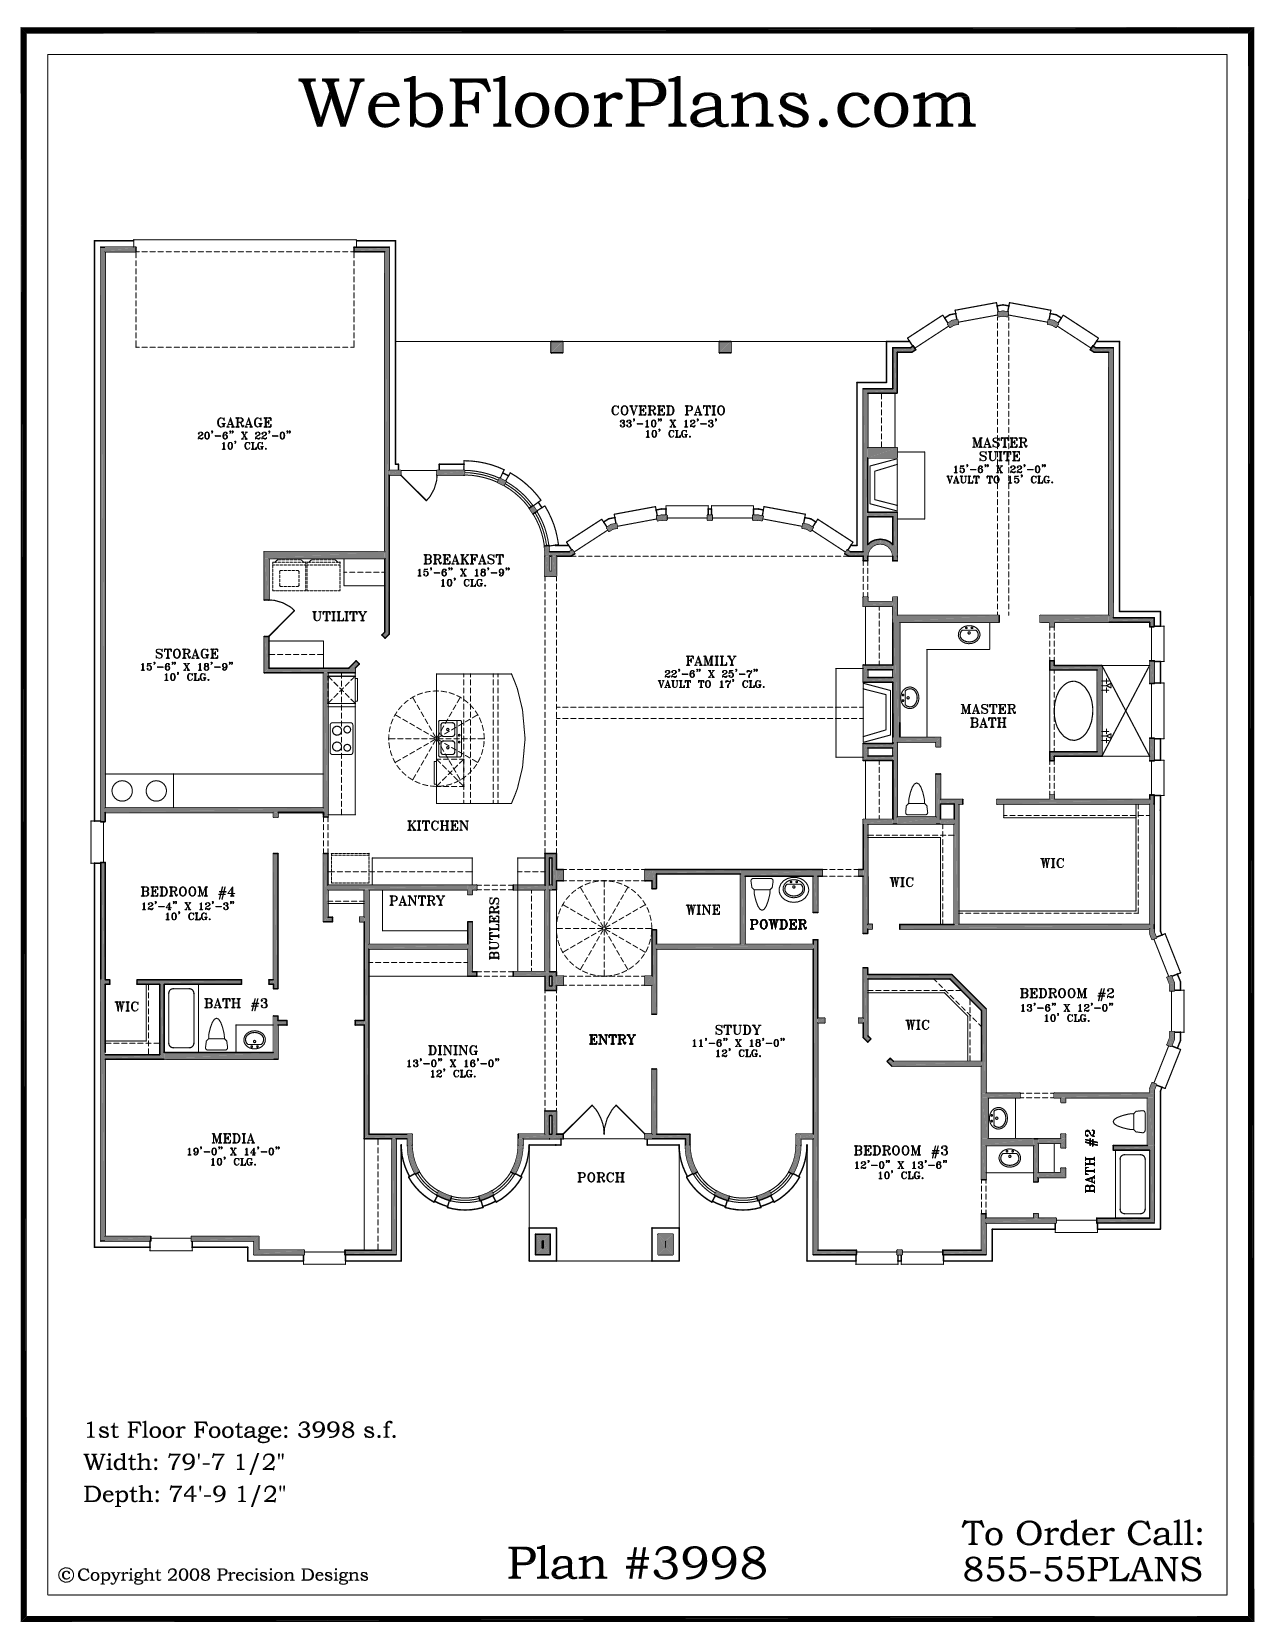 nice single story home plans #1 one story house plans | european